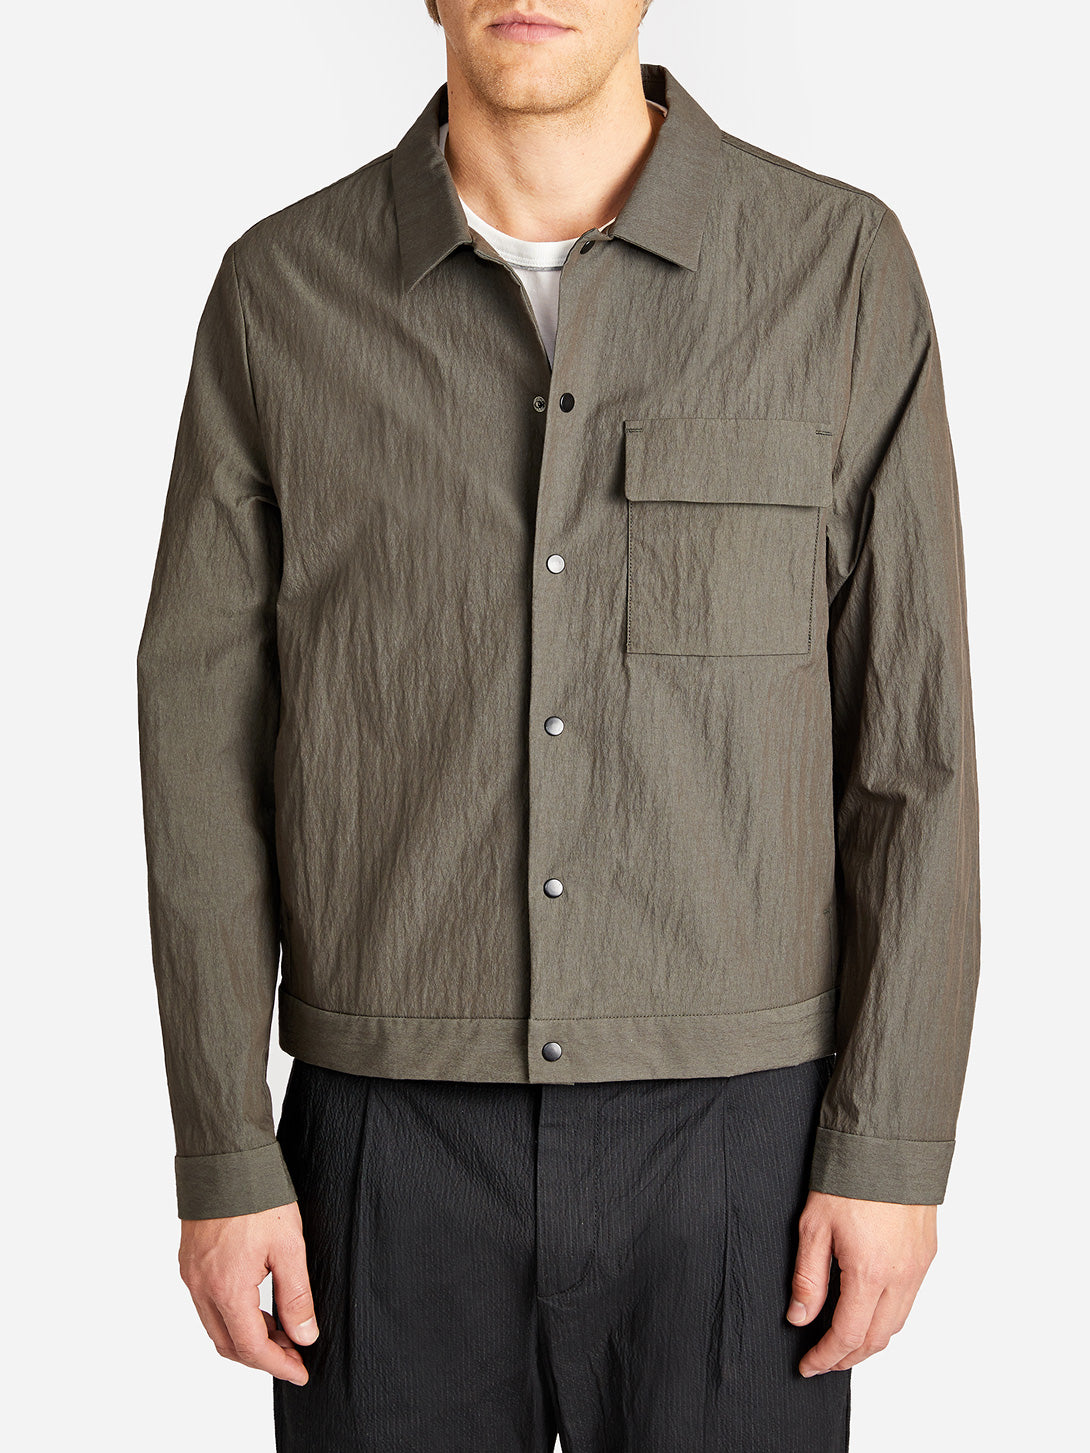 KURA JACKET OLIVE ONS CLOTHING GREY LABEL